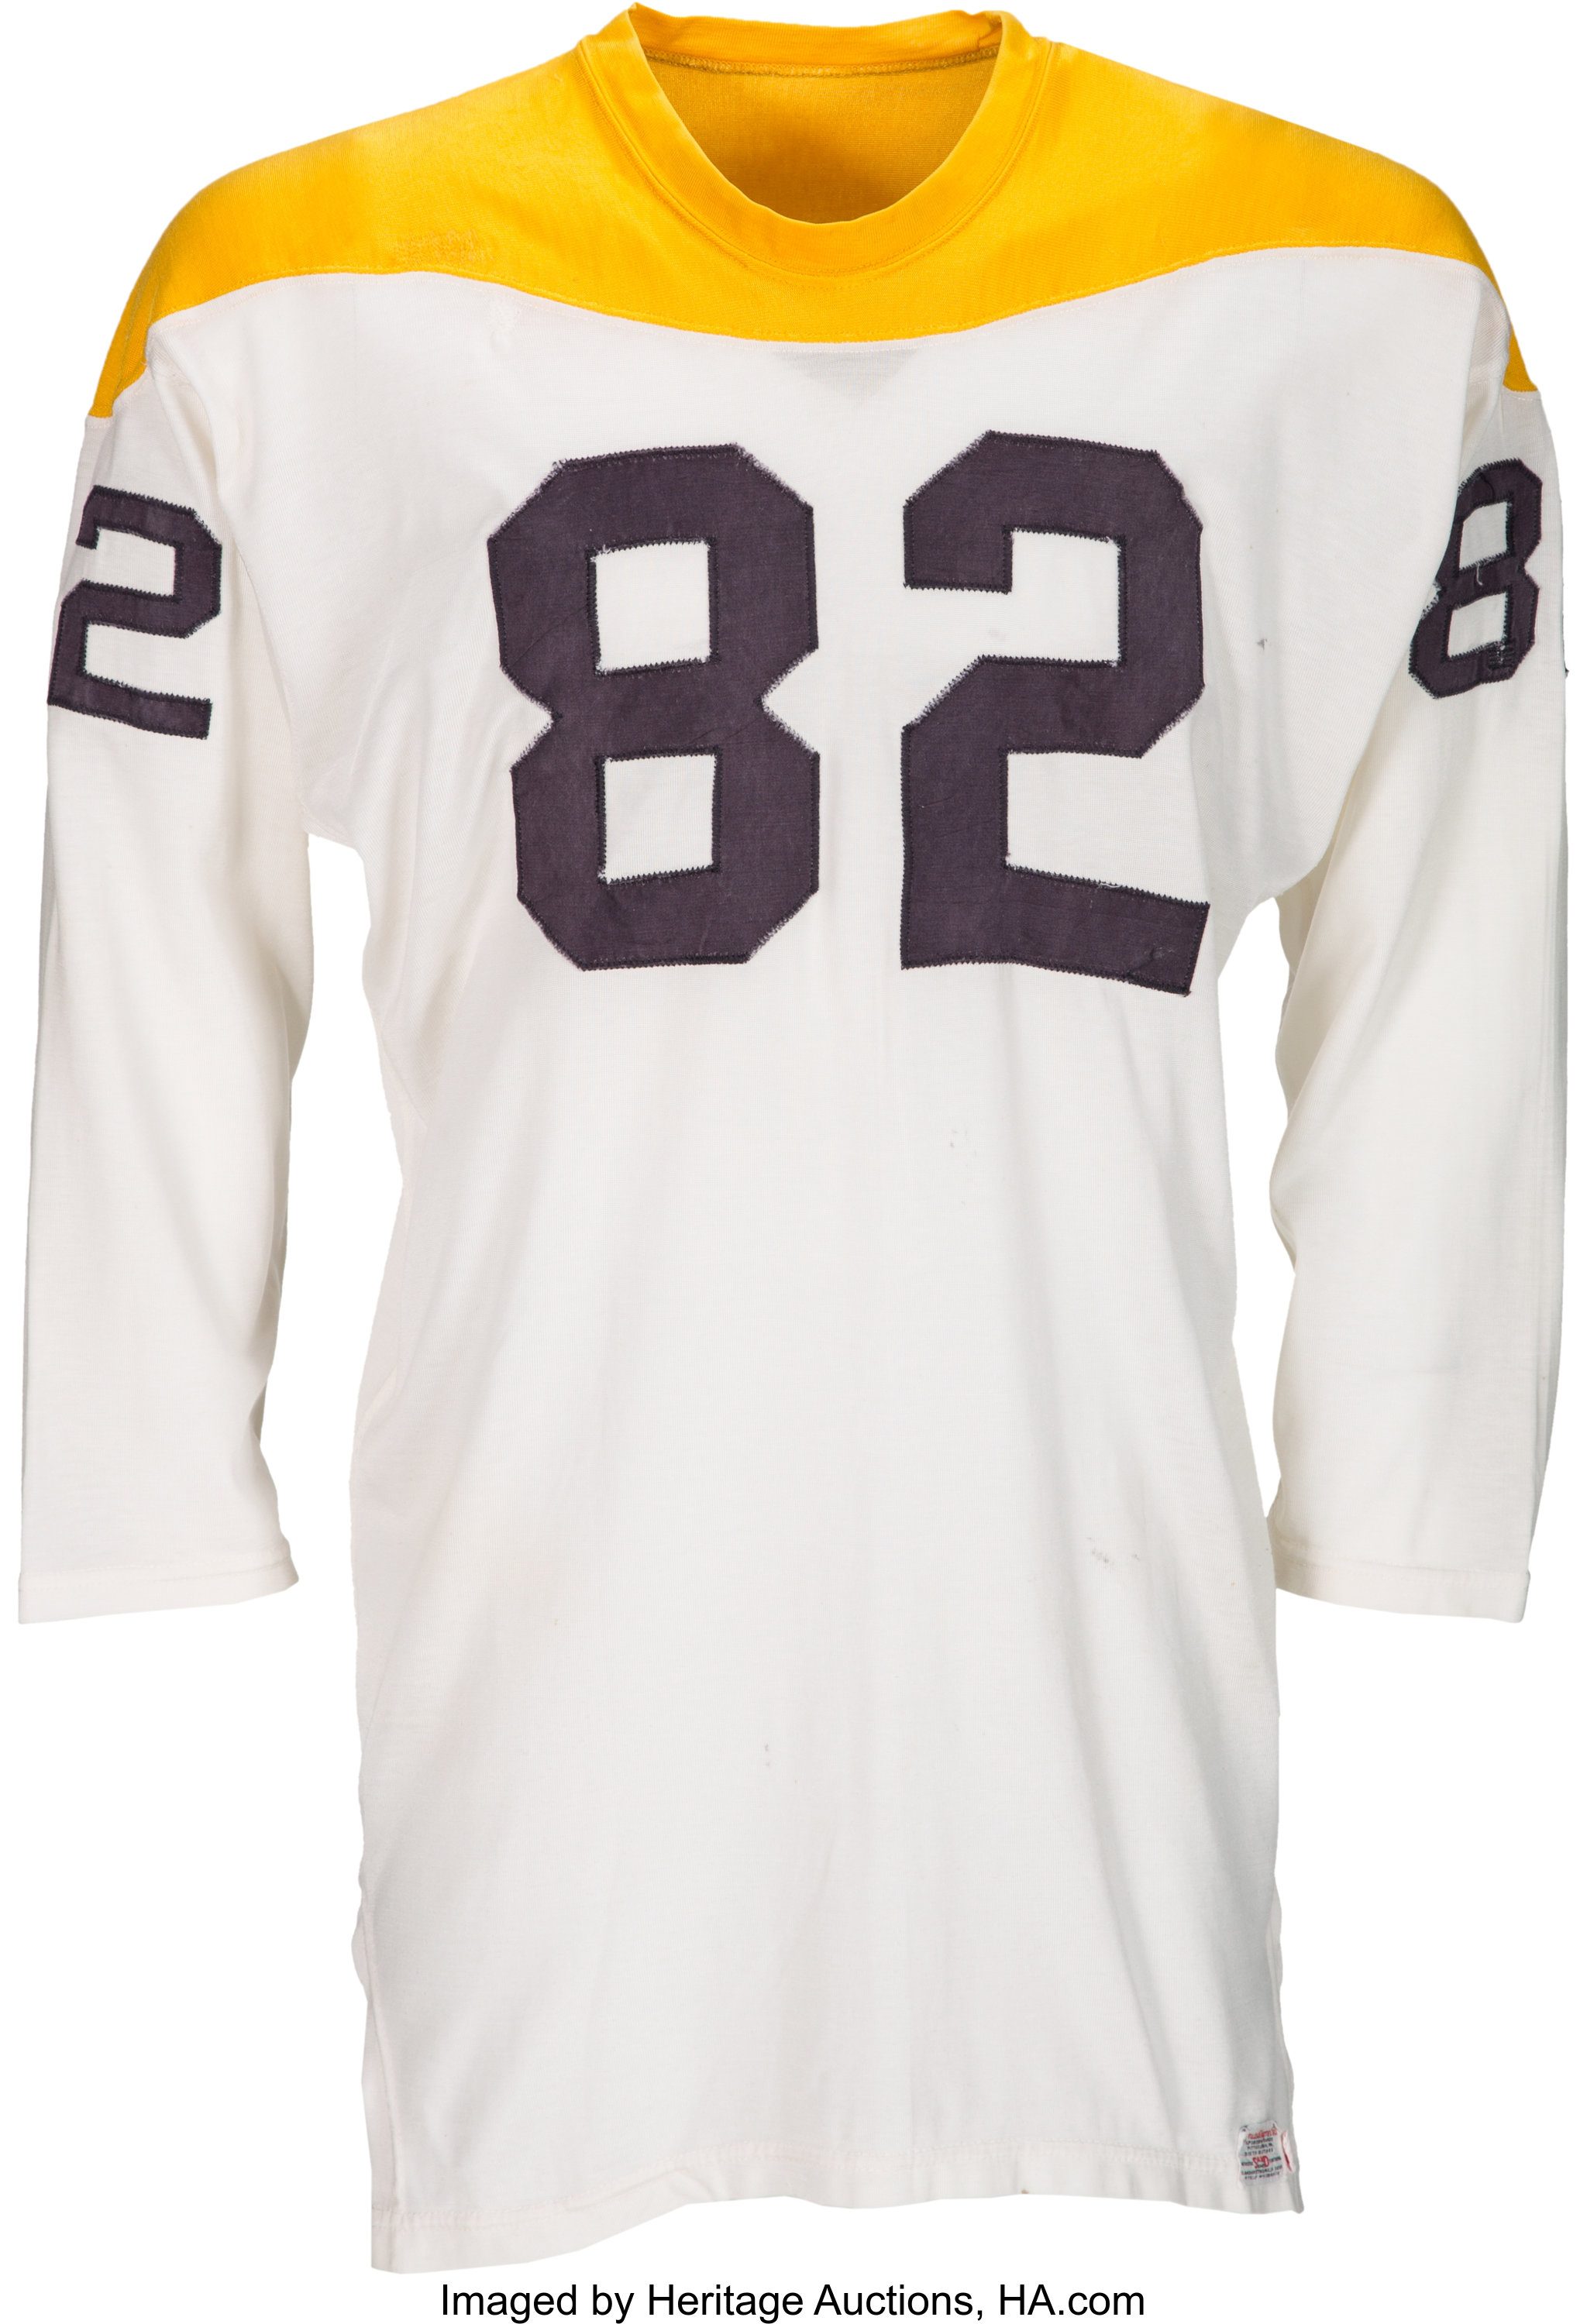 12541a77e 1966-67 John Hilton Game Worn Pittsburgh Steelers Jersey. ... | Lot #80530  | Heritage Auctions